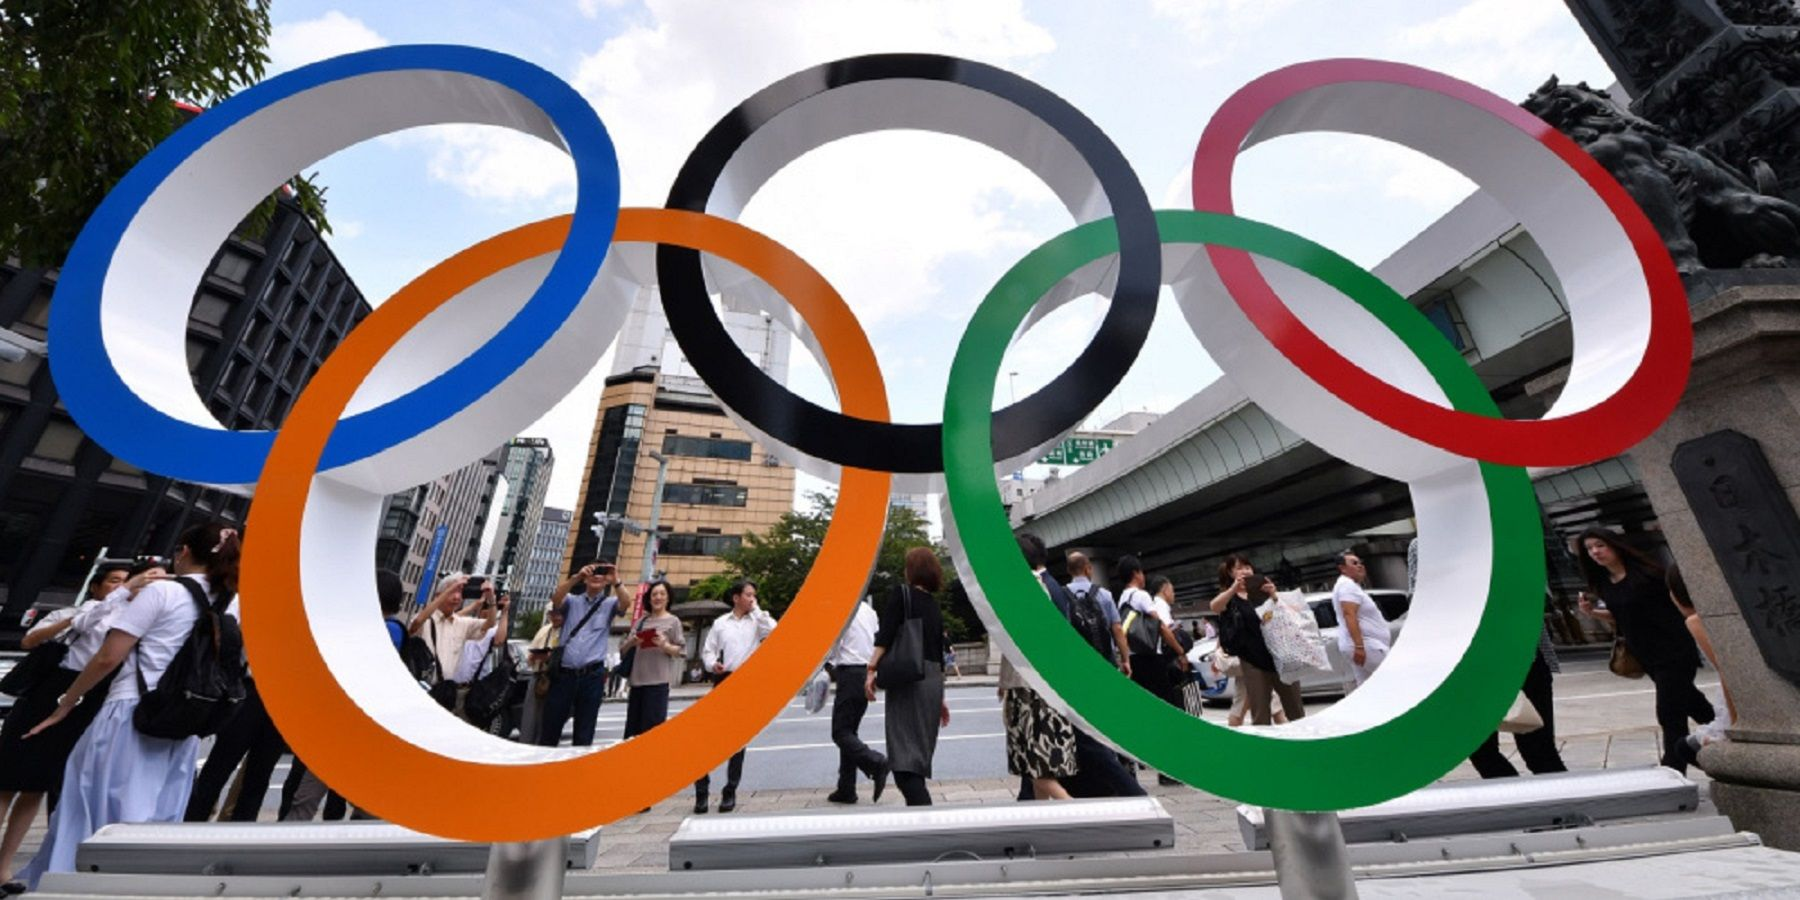 Olympic Champions take top ho | Australian Olympic Committee